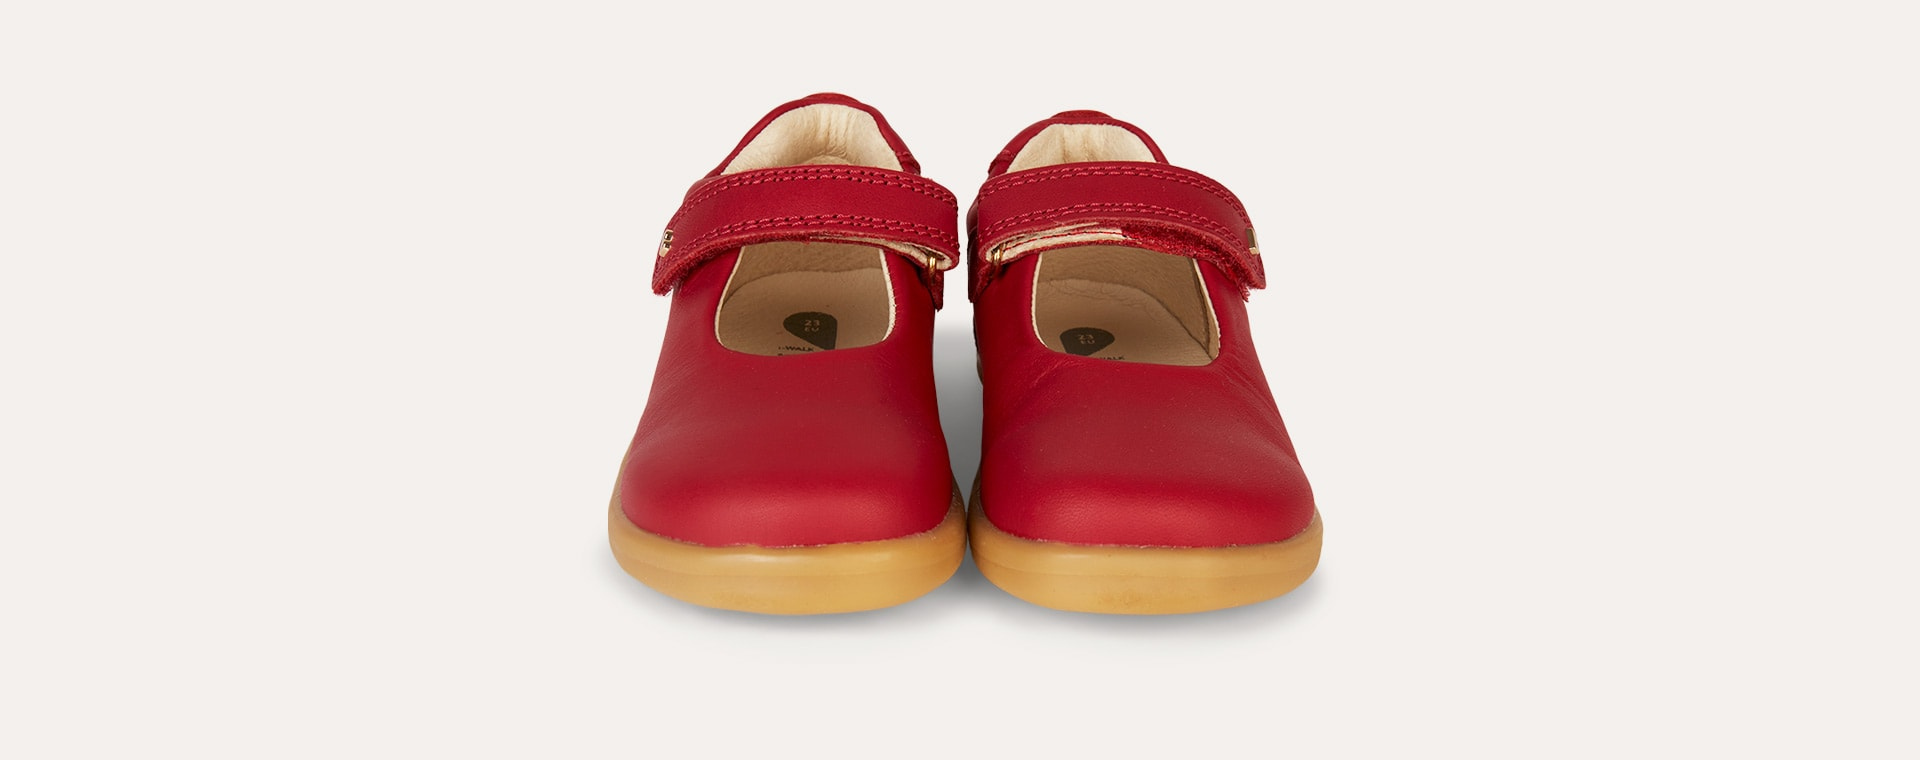 Rio Red Bobux I-Walk Delight Mary Jane Shoe